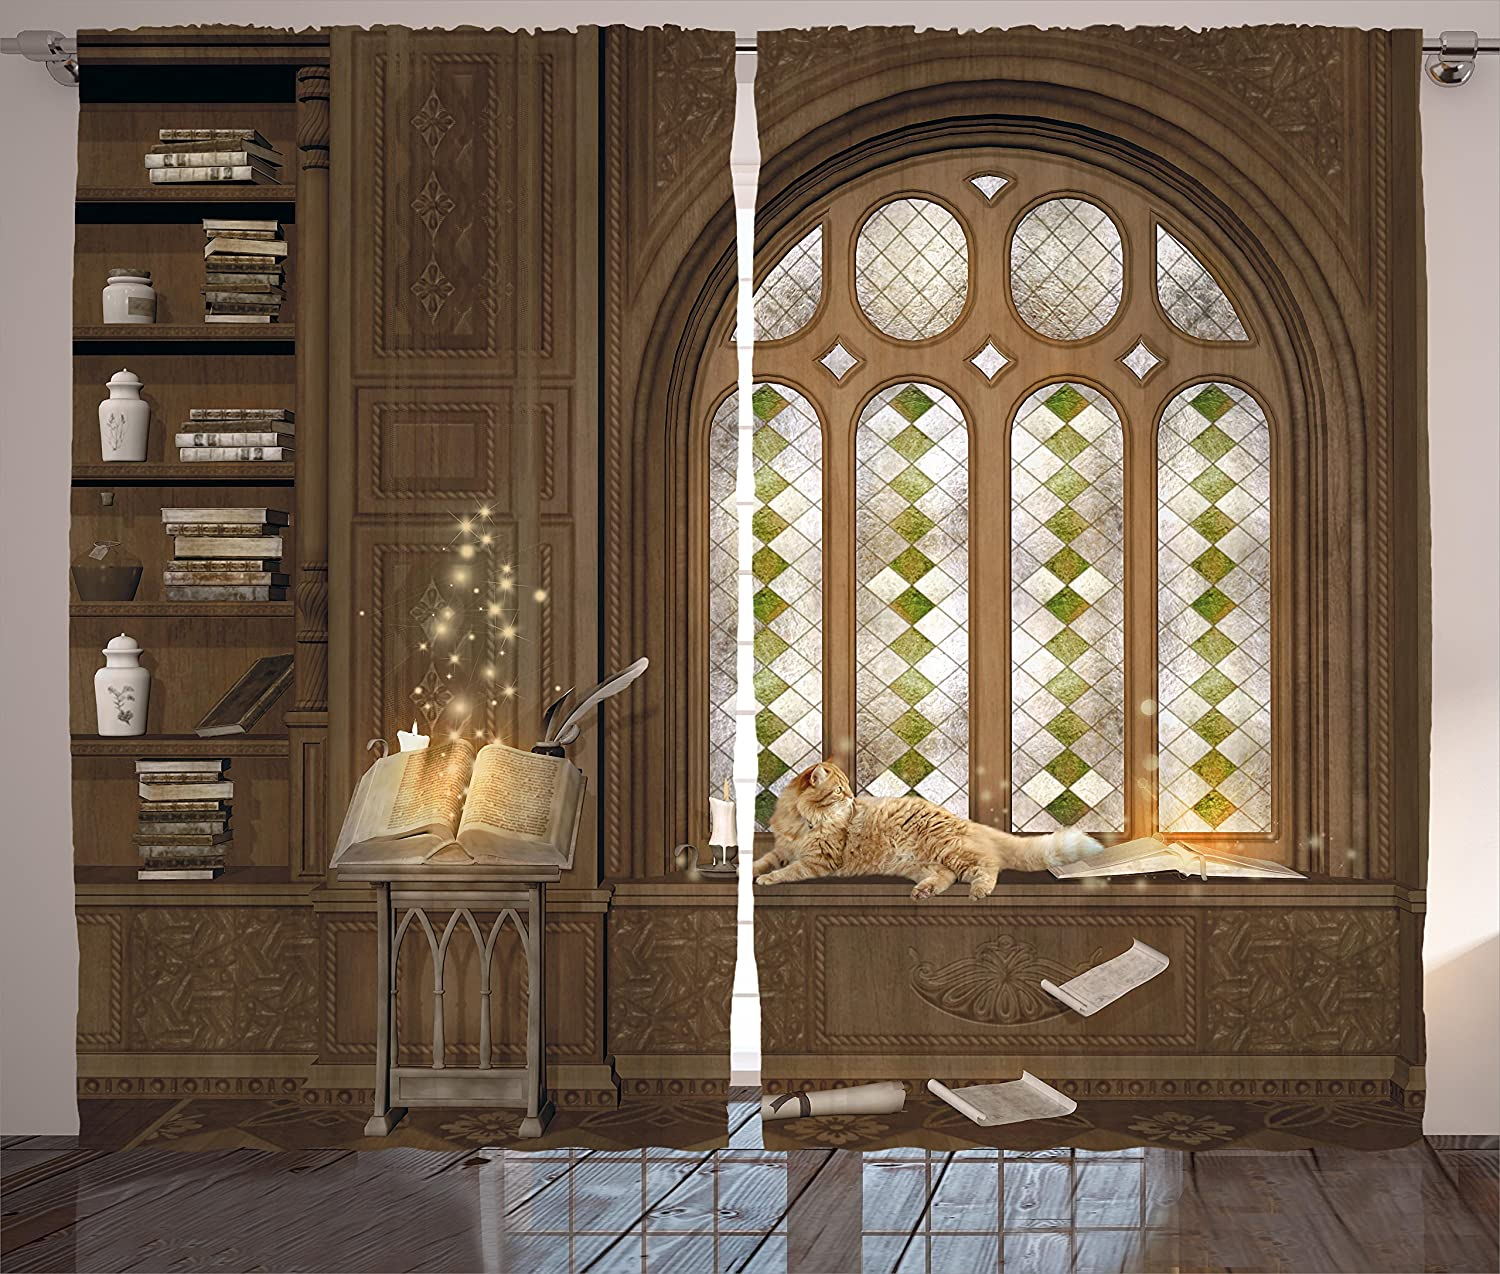 Ambesonne Gothic Decor Curtains, Room for Study in Medieval Library with Cat Sleeping on Window Antique Mansion, Living Room Bedroom Window Drapes 2 Panel Set, 108 W X 84 L Inches, Taupe